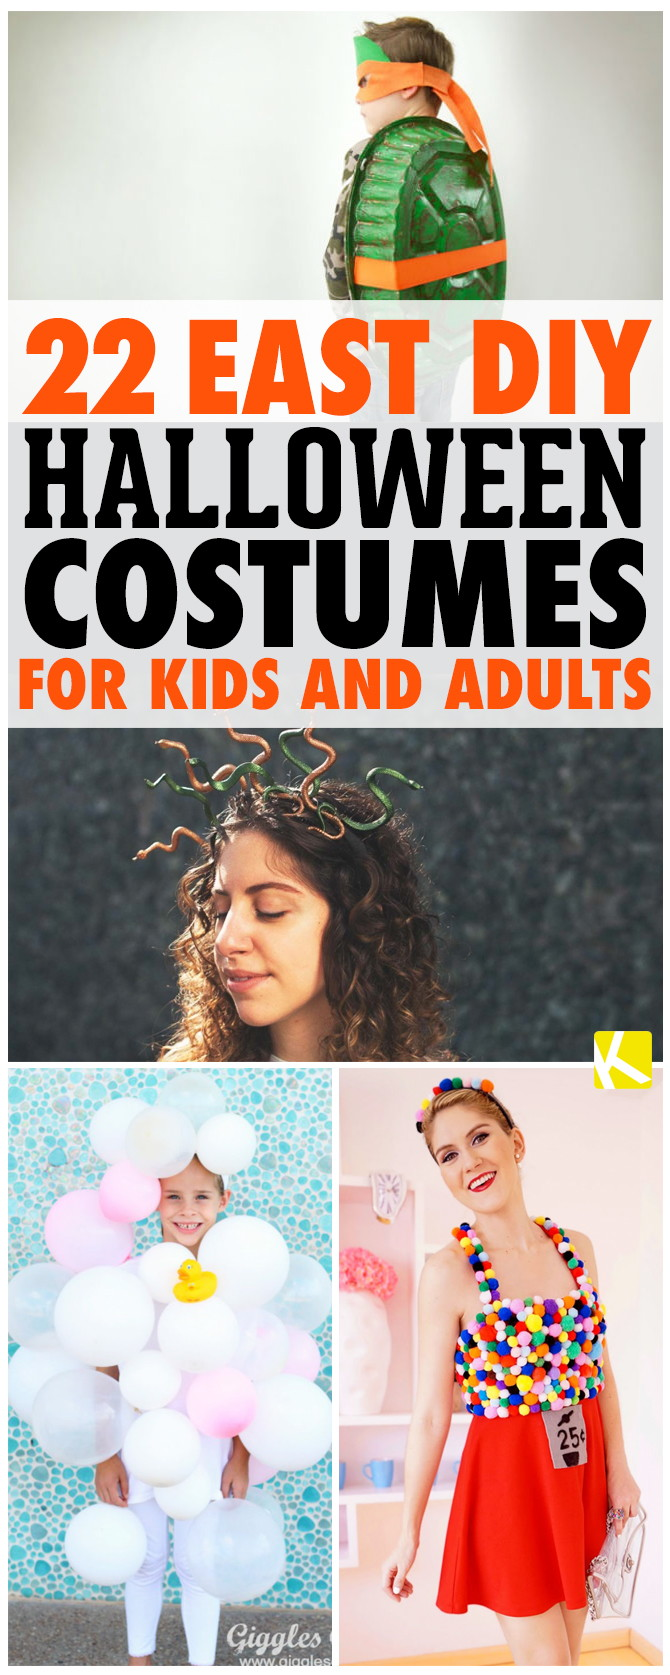 halloween costumes coupon codes 2016 promo code from